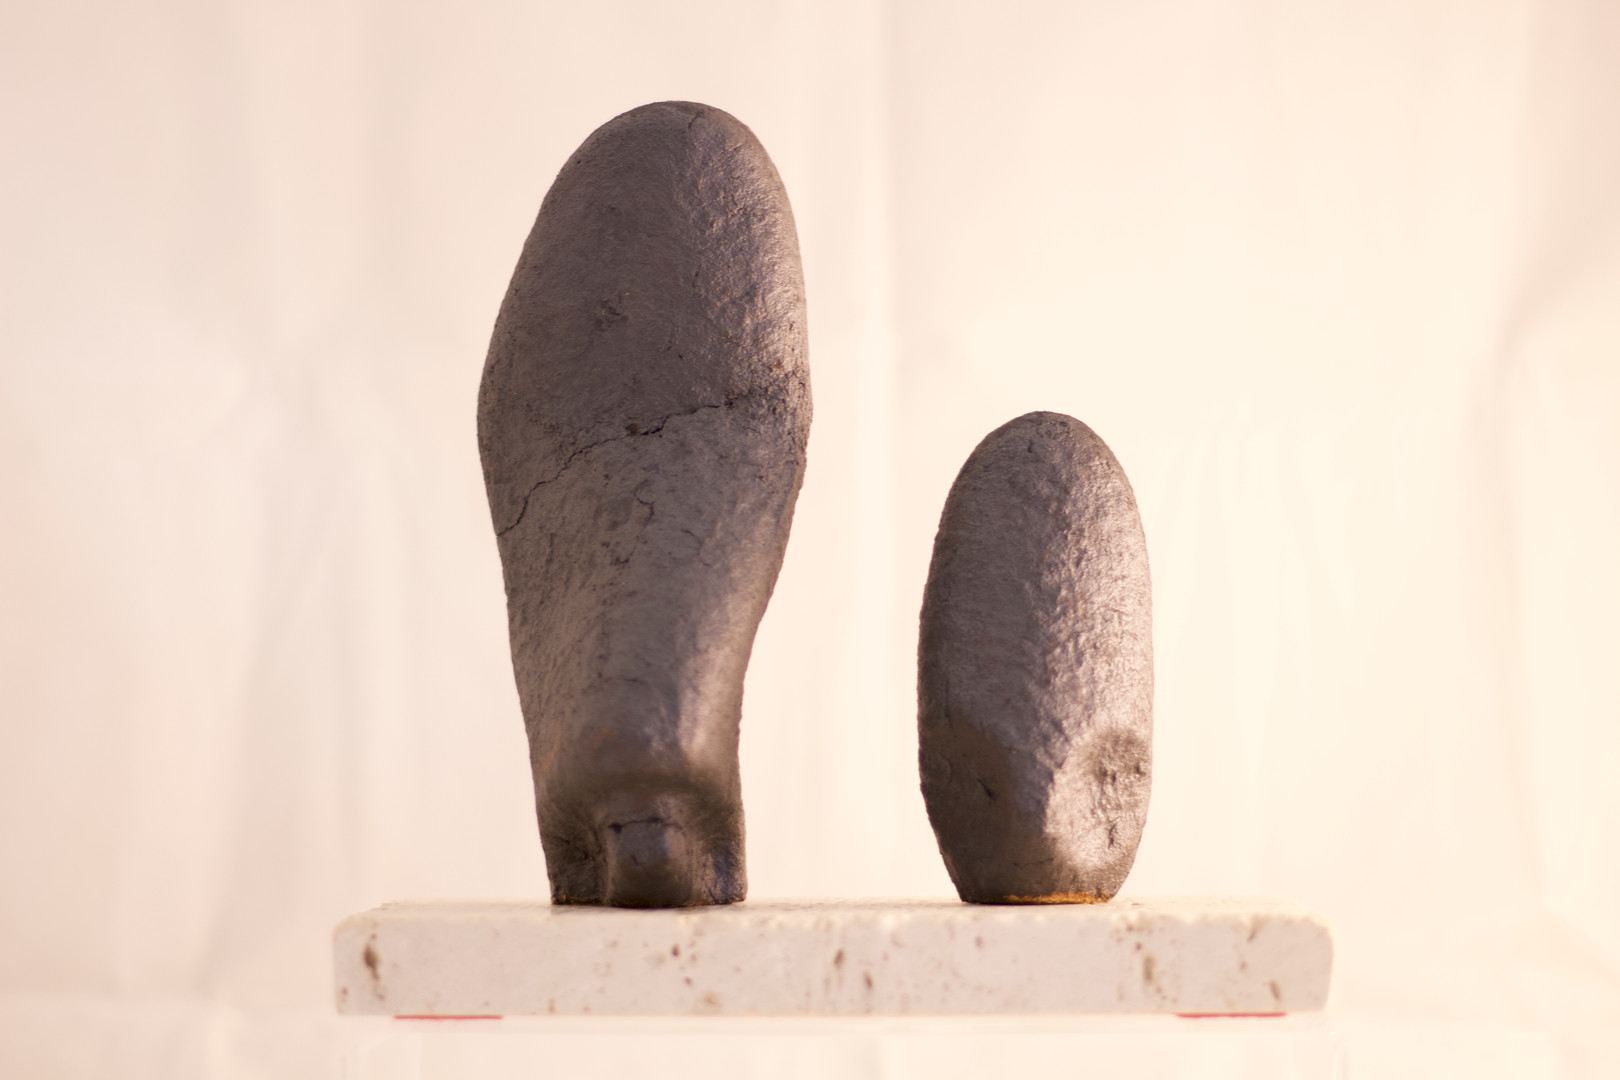 Sculpture – related forms, black 2020 by Peter Smith